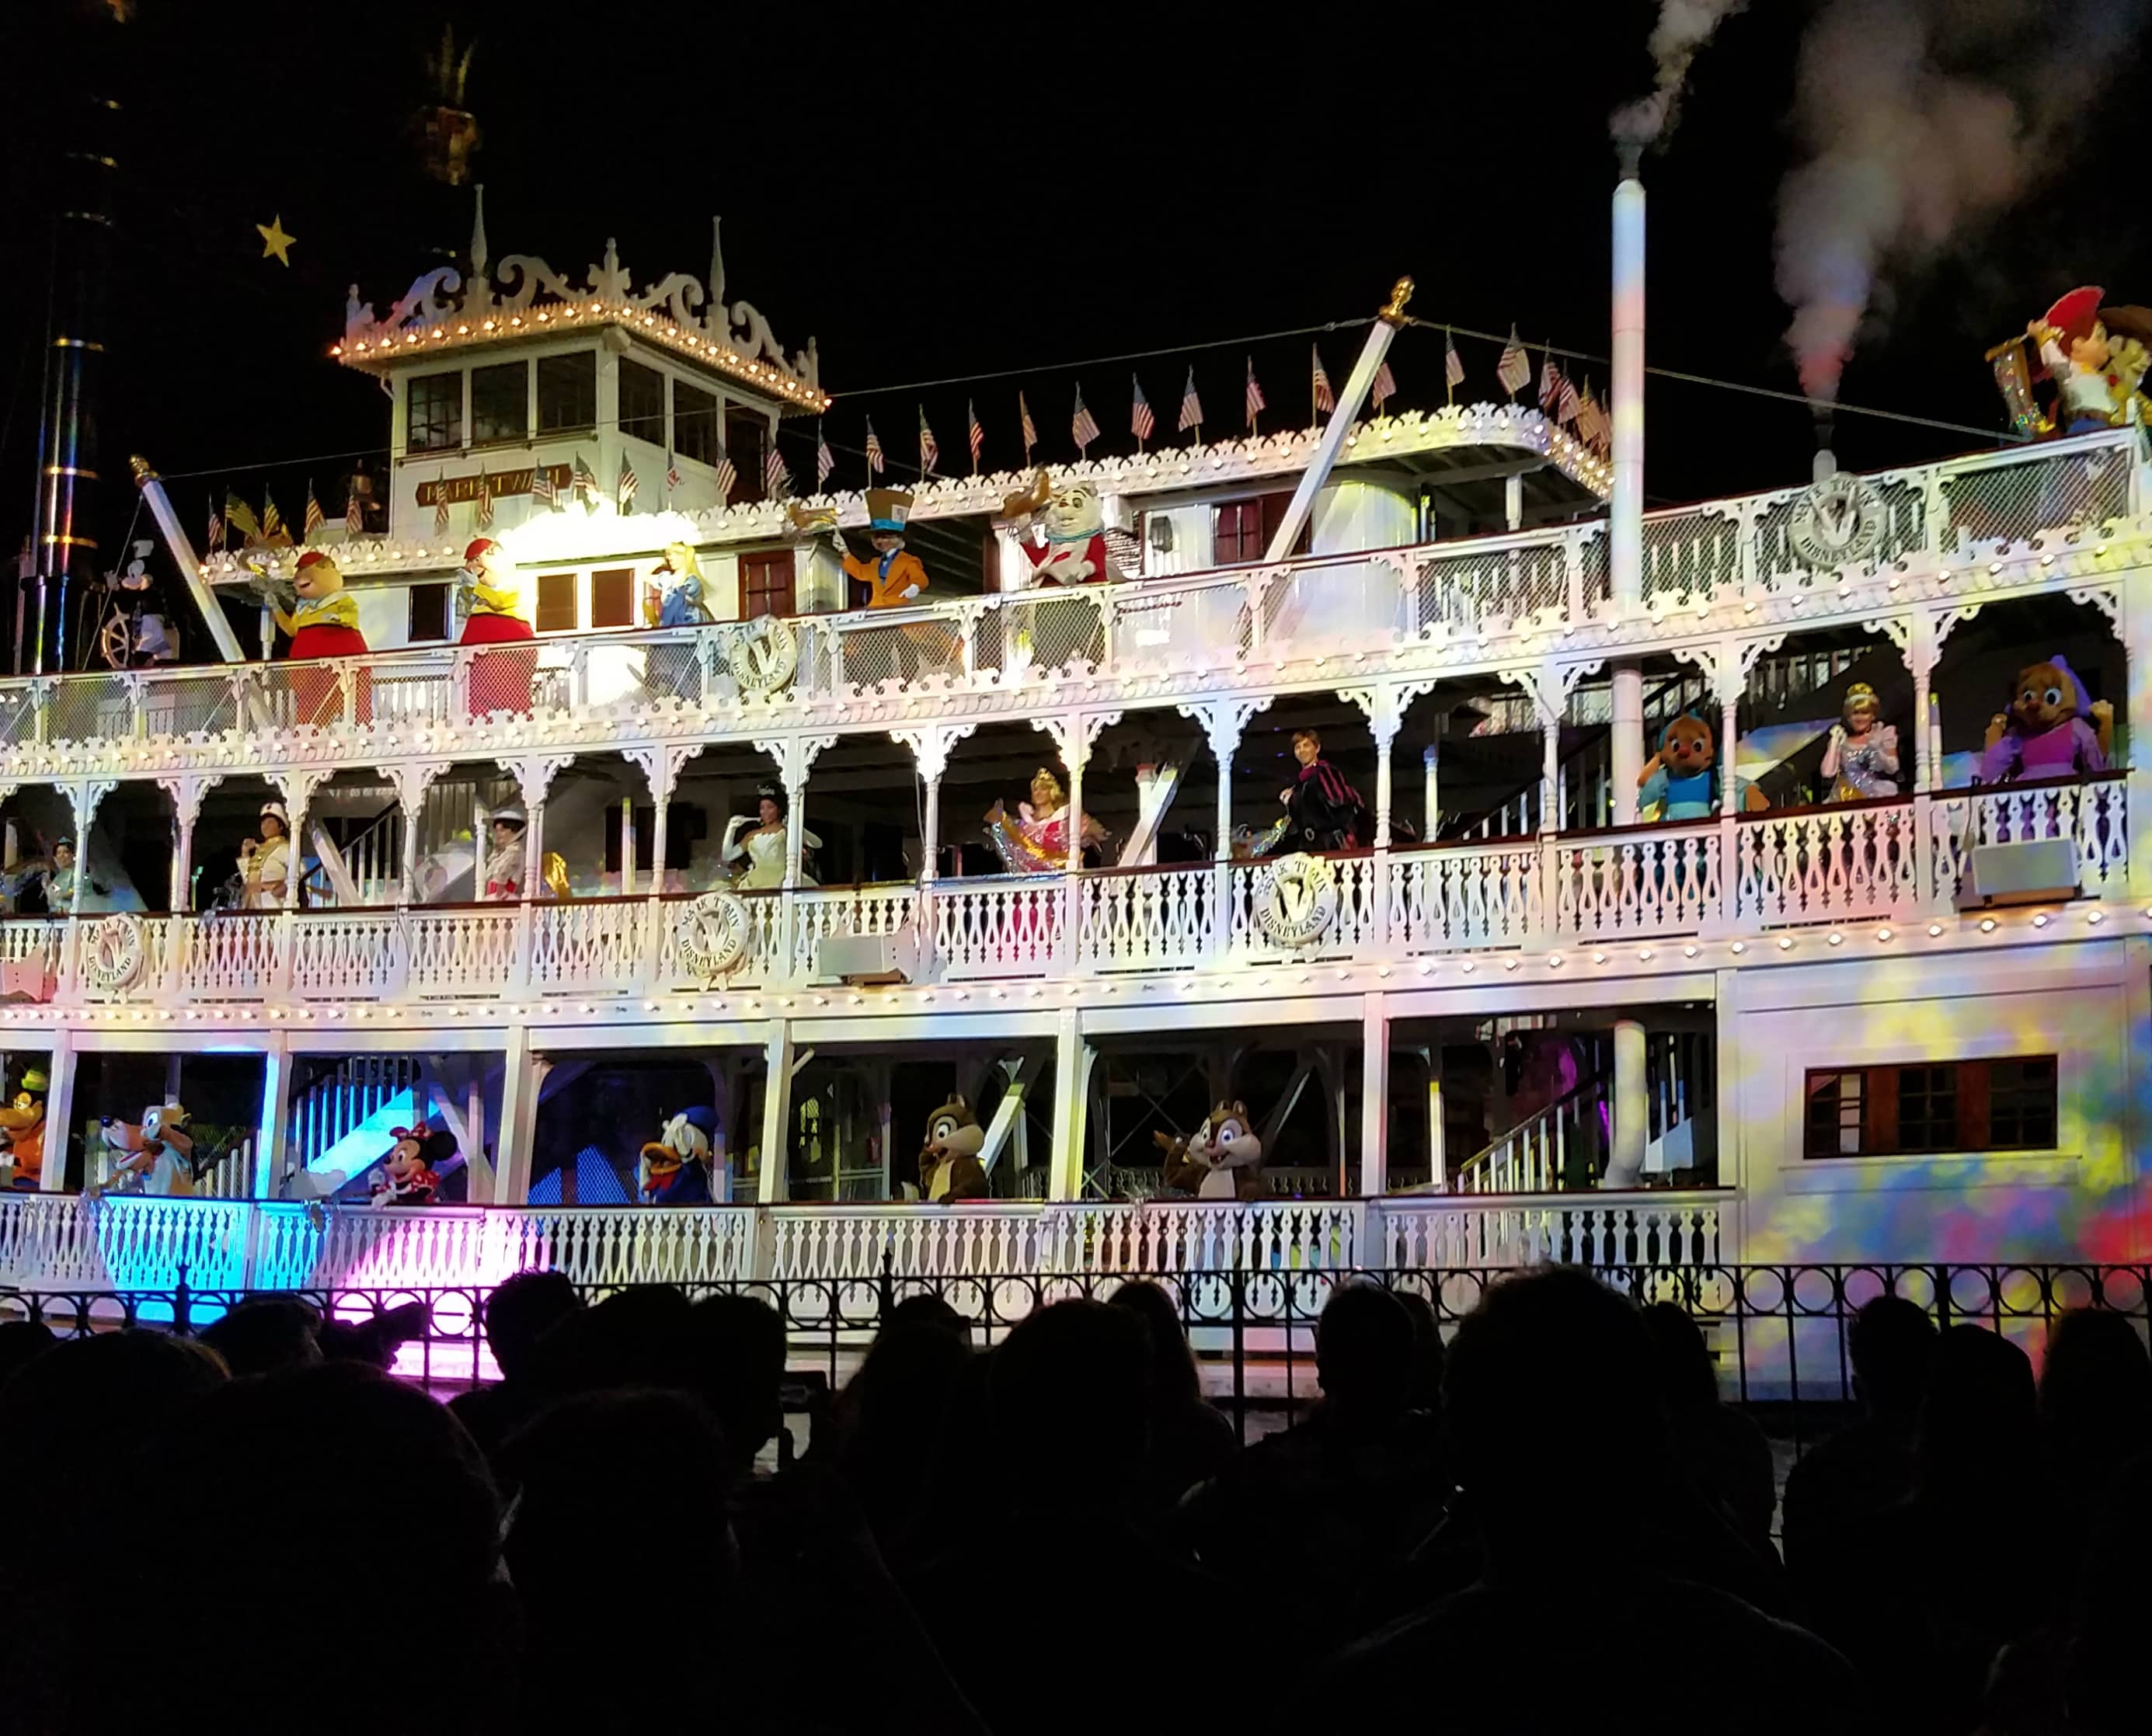 While at D23 Expo - Disneyland and Disney California Adventure - Character Ferry